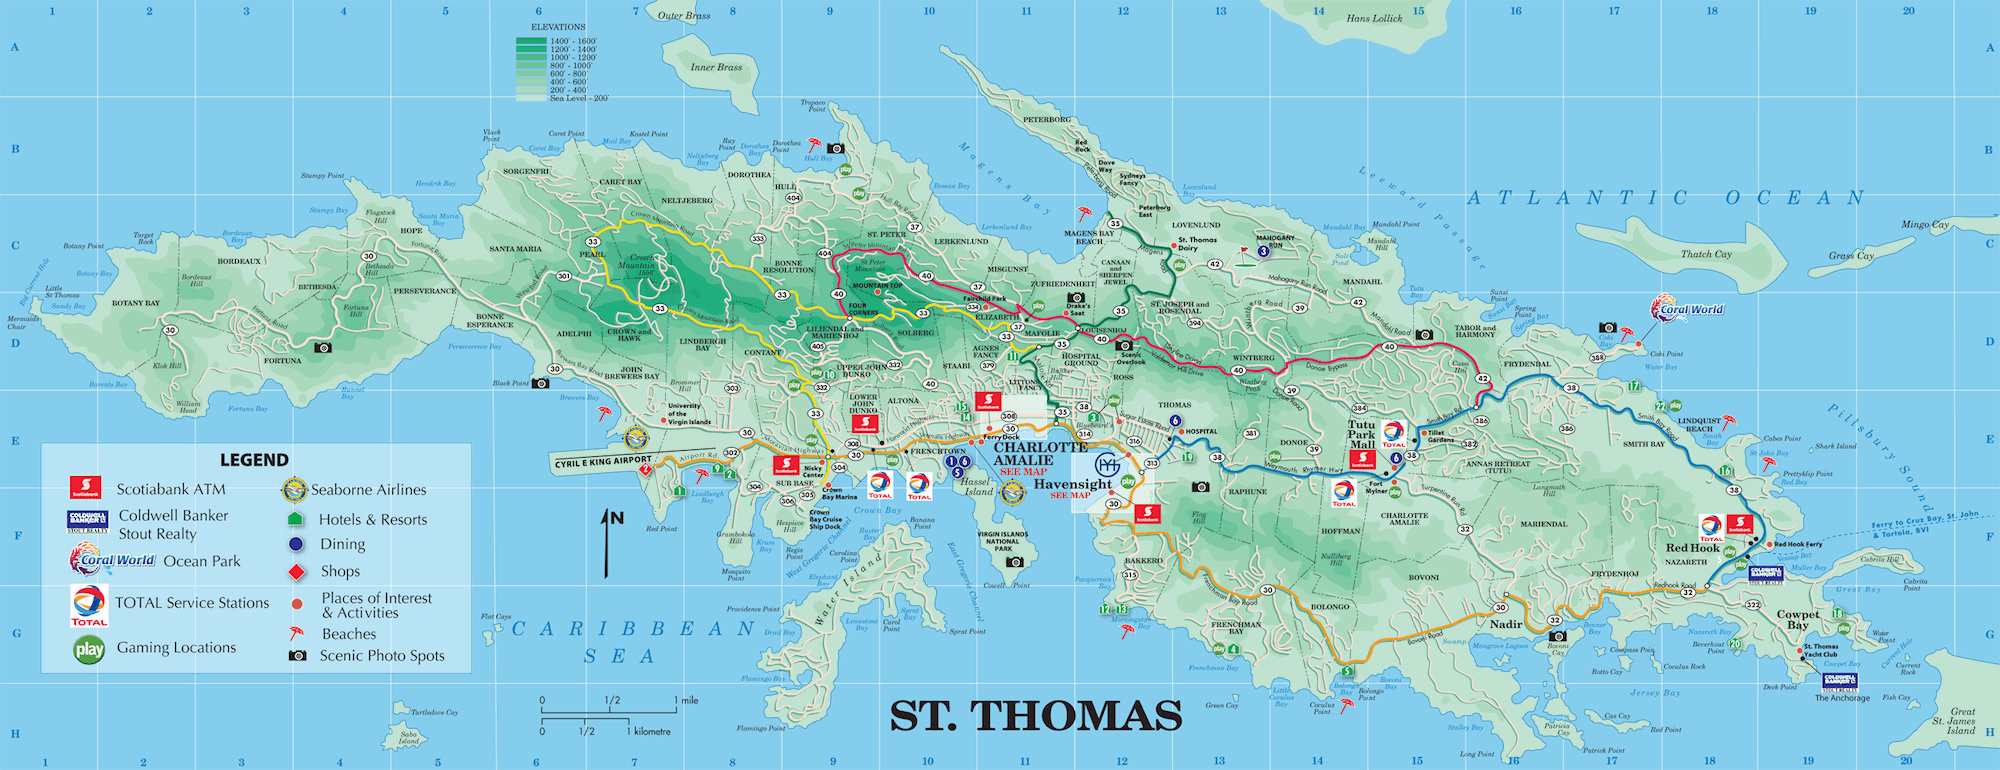 Large detailed road and tourist map of St Thomas US Virgin